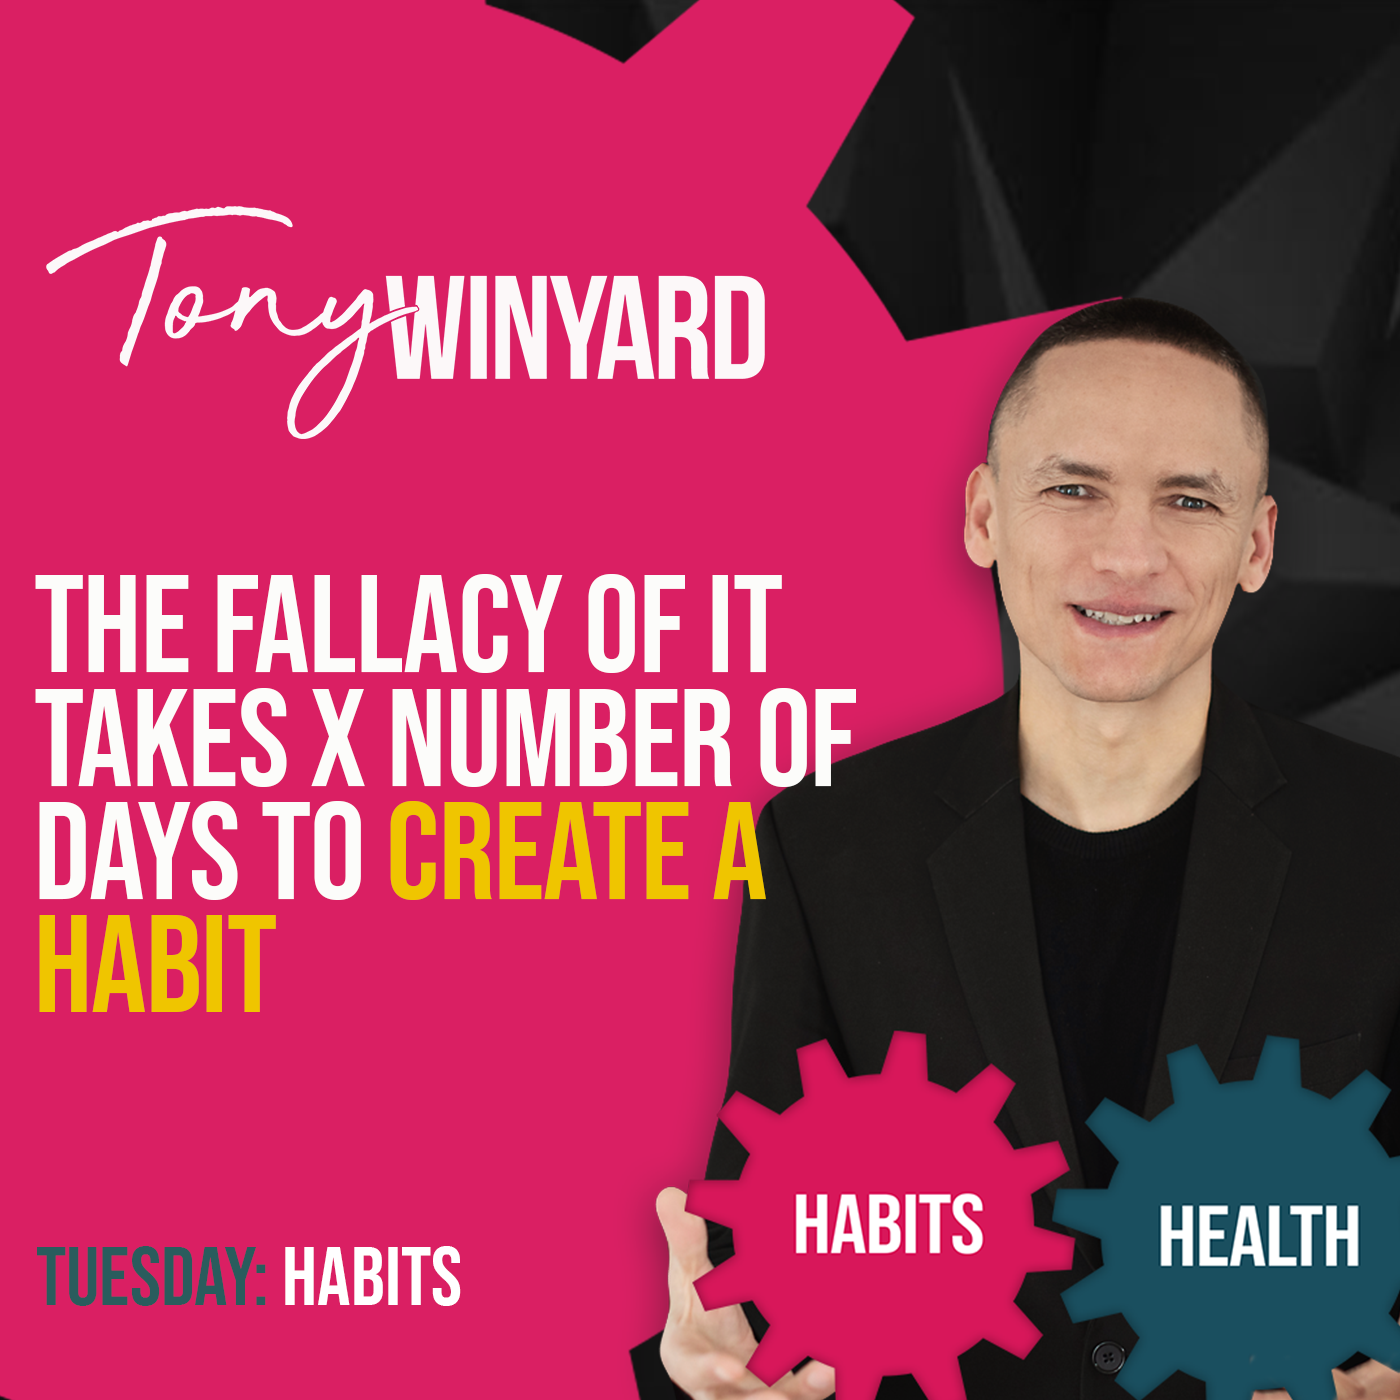 The fallacy of it takes x number of days to create a habit